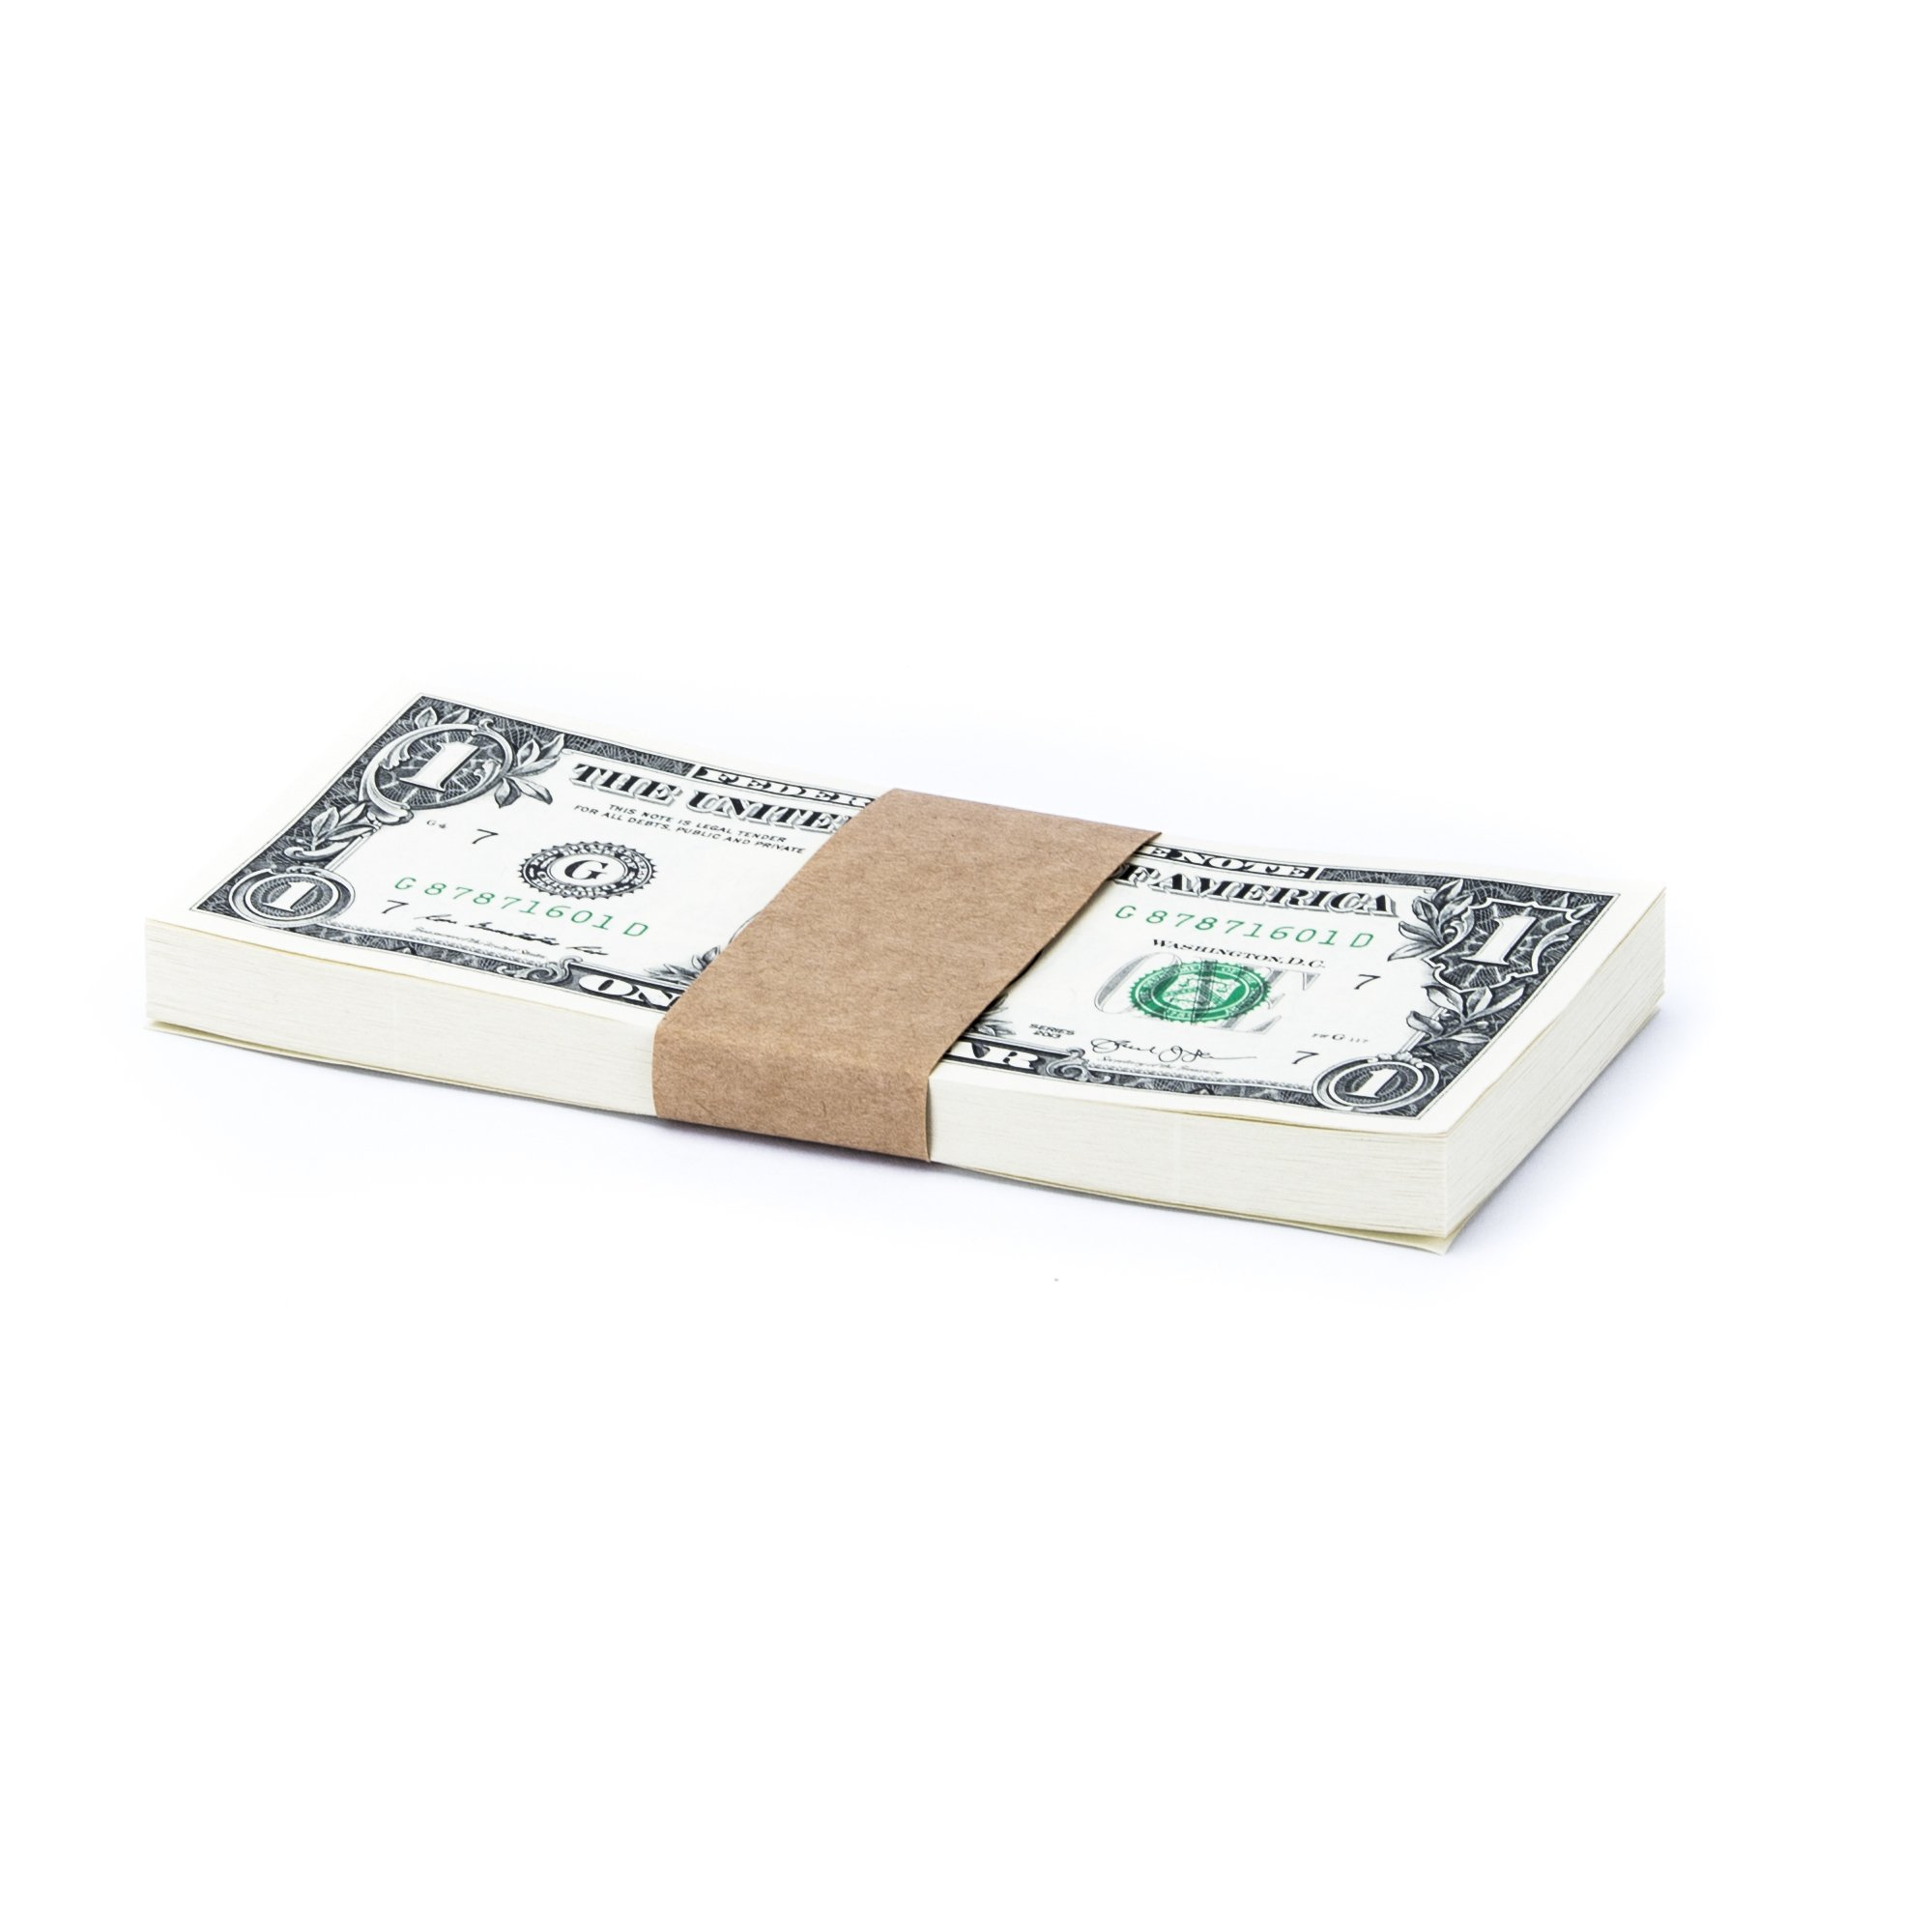 Natural Kraft Brown No Denomination Currency Band Bundles (5000 Bands) by Carousel Checks Inc.